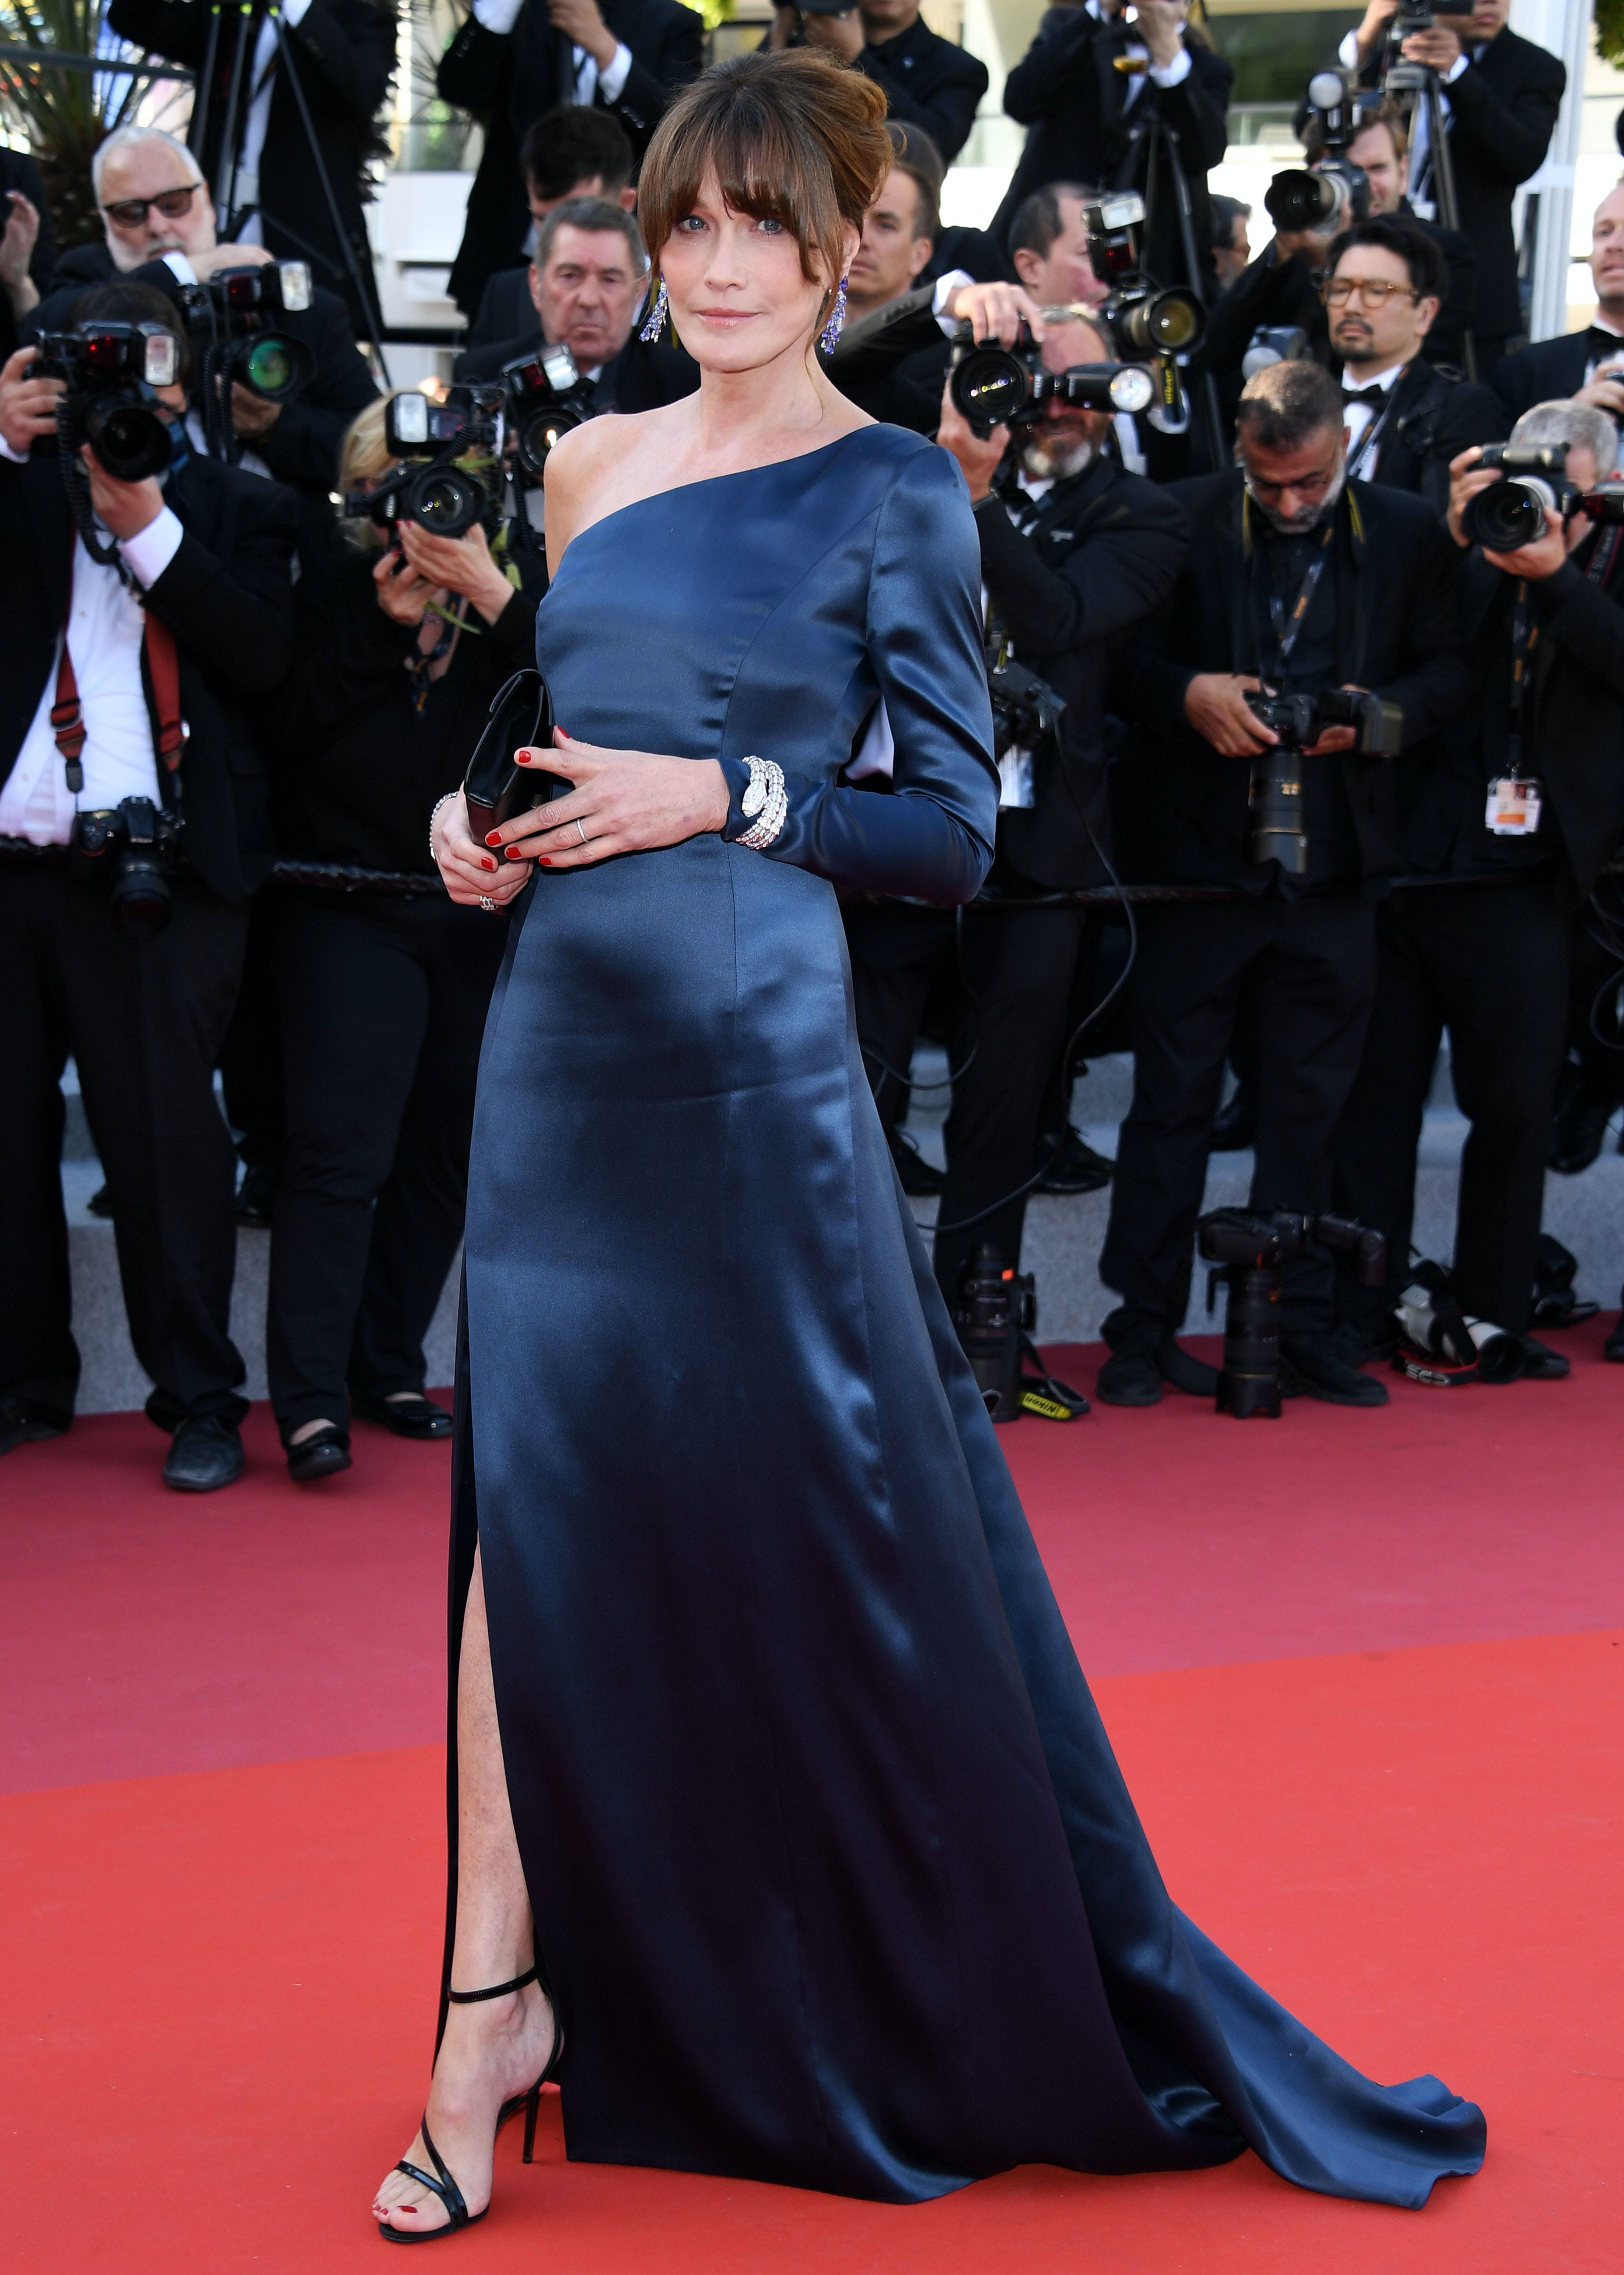 Carla Bruni at the 72nd annual Cannes Film Festival